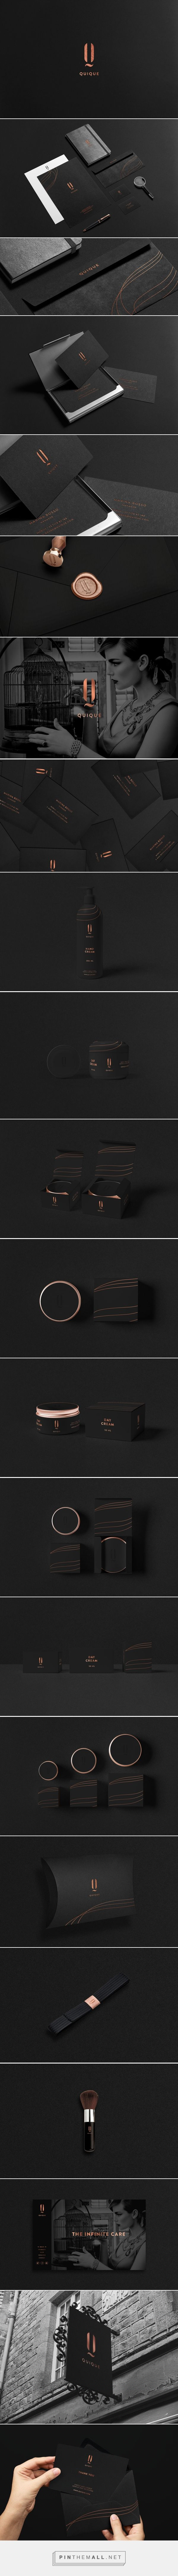 QUIQUE cosmetics Branding on Behance